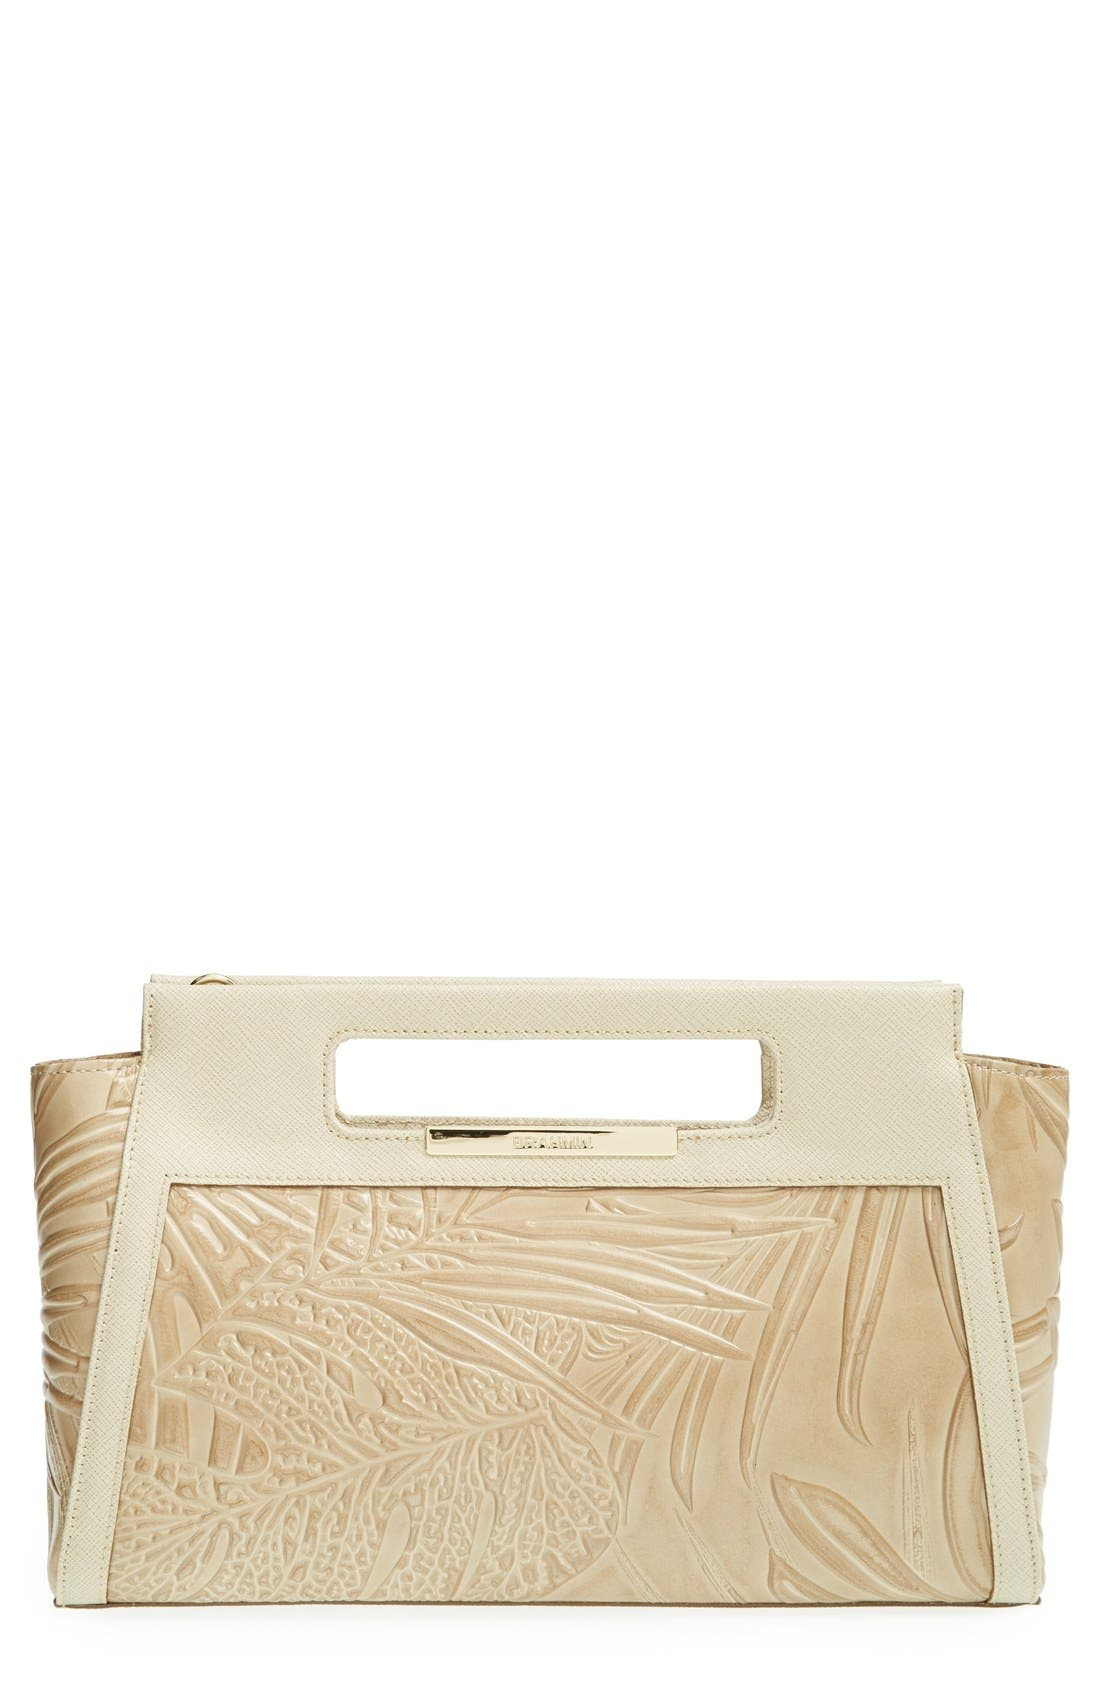 Main Image - Brahmin 'Lenox' Embossed Leather Clutch